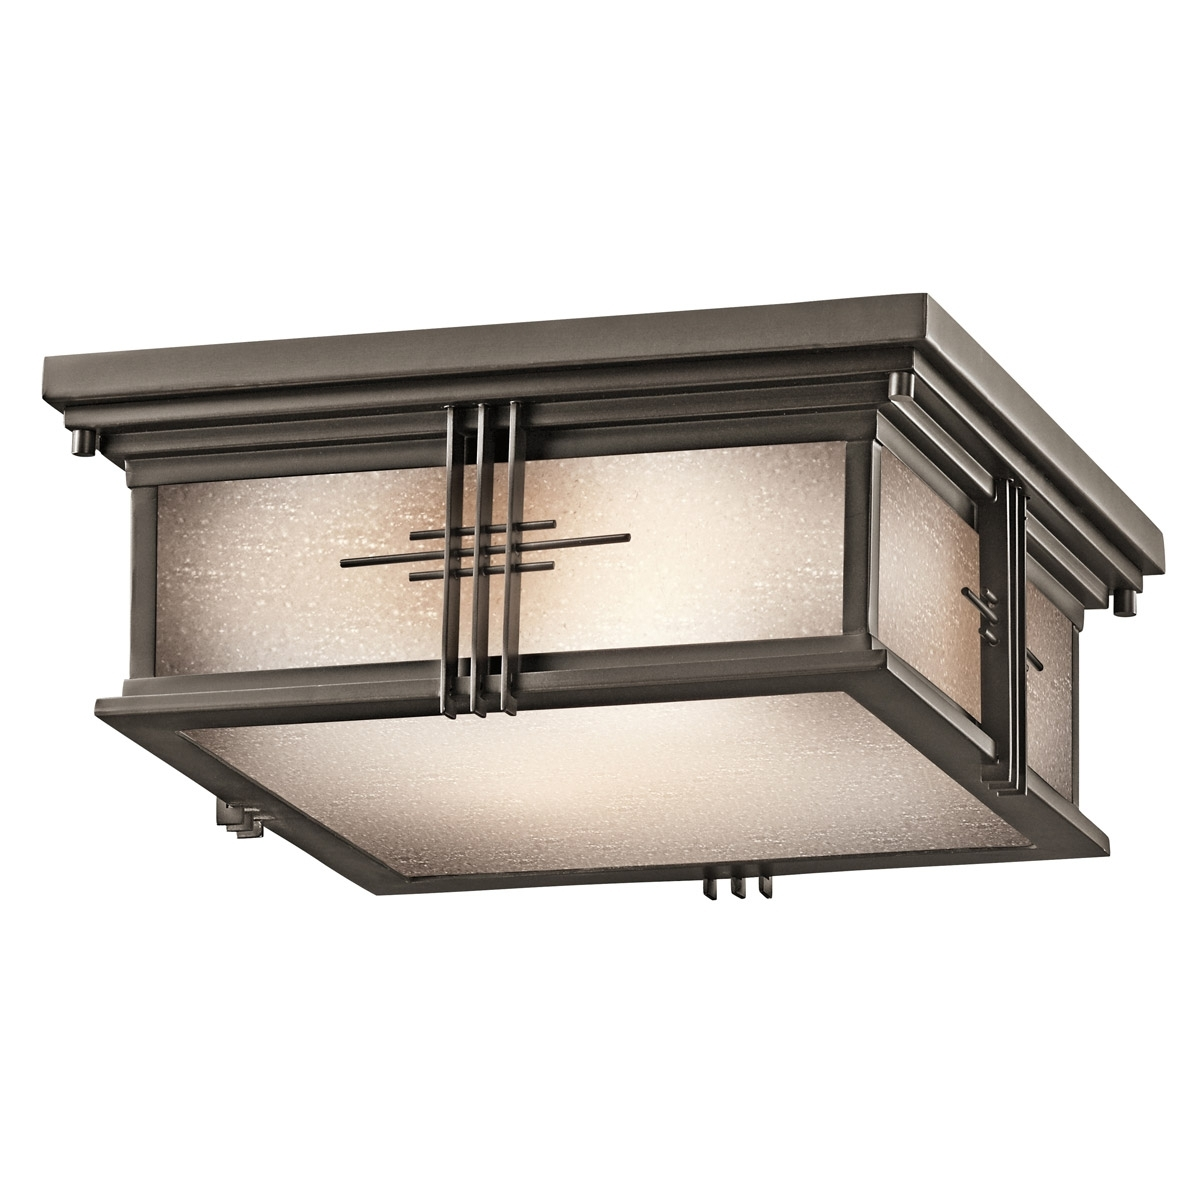 49164Oz Portman Square Outdoor Flush Mount Ceiling Fixture Regarding Well Known Cheap Outdoor Ceiling Lights (View 2 of 20)